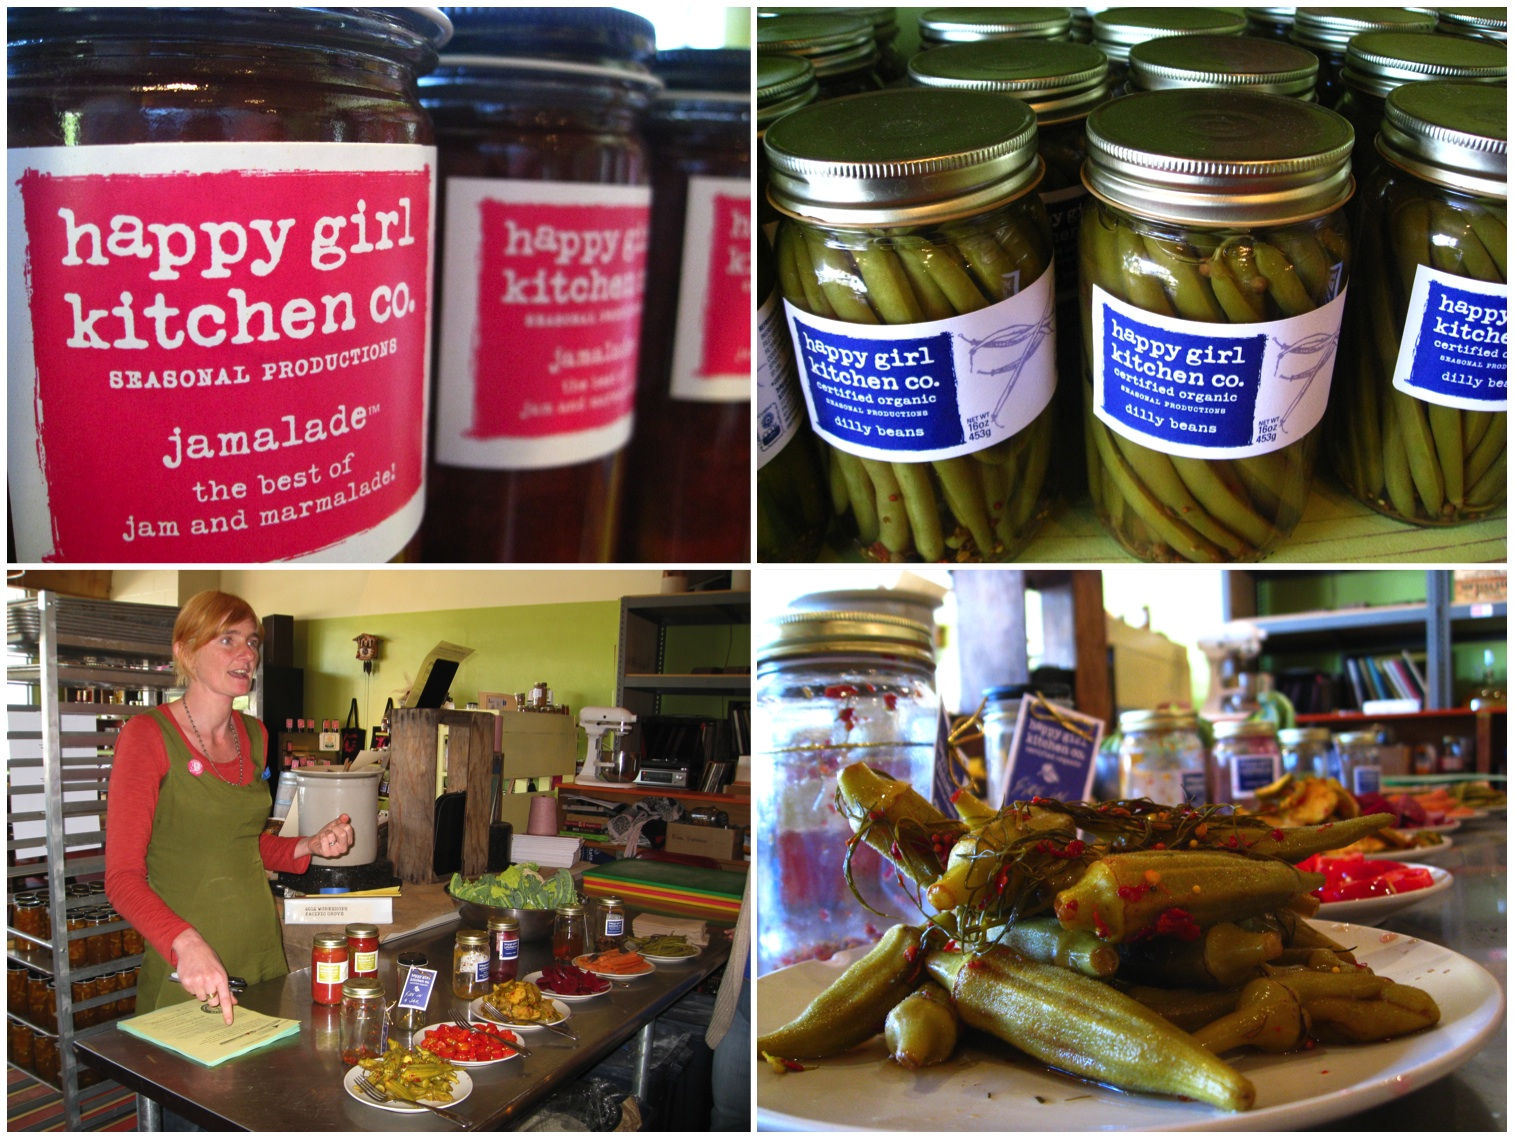 do this!: how to get pickled with happy girl kitchen | 8.ate@eight